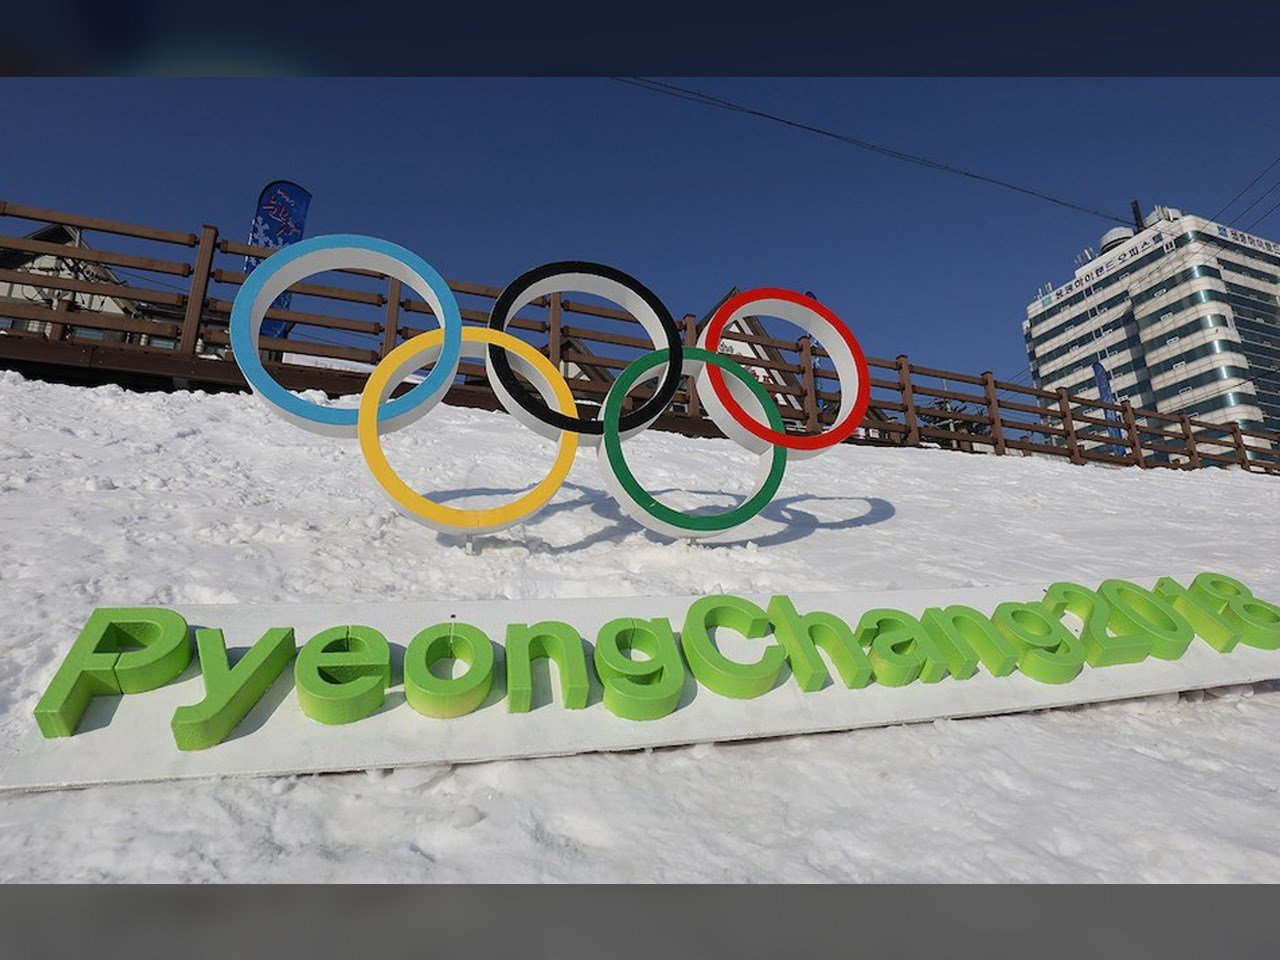 The 2018 Winter Olympics in Pyeongchang